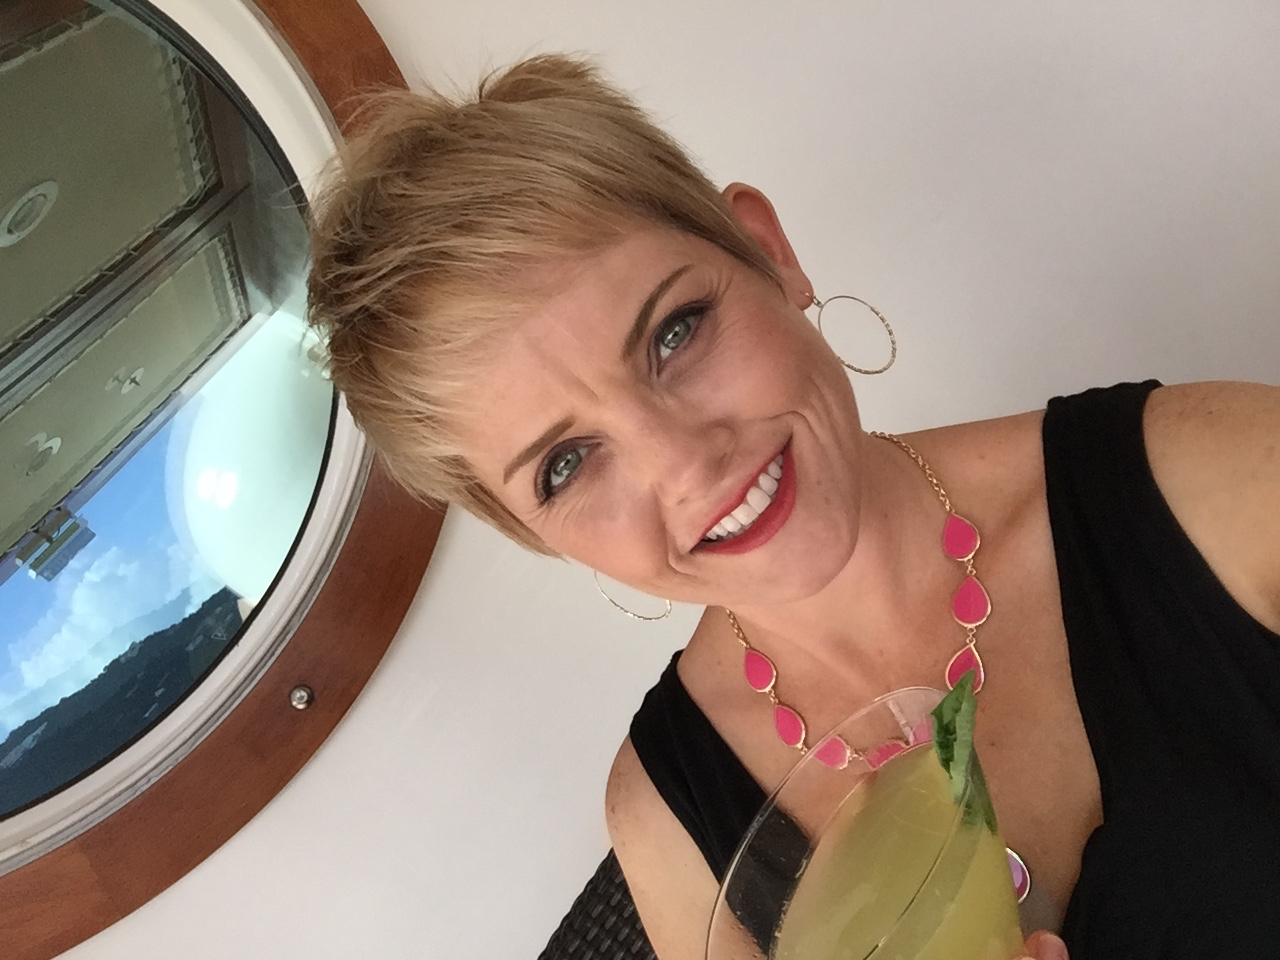 Disney Fantasy Cruise - Meridian Bar Selfie